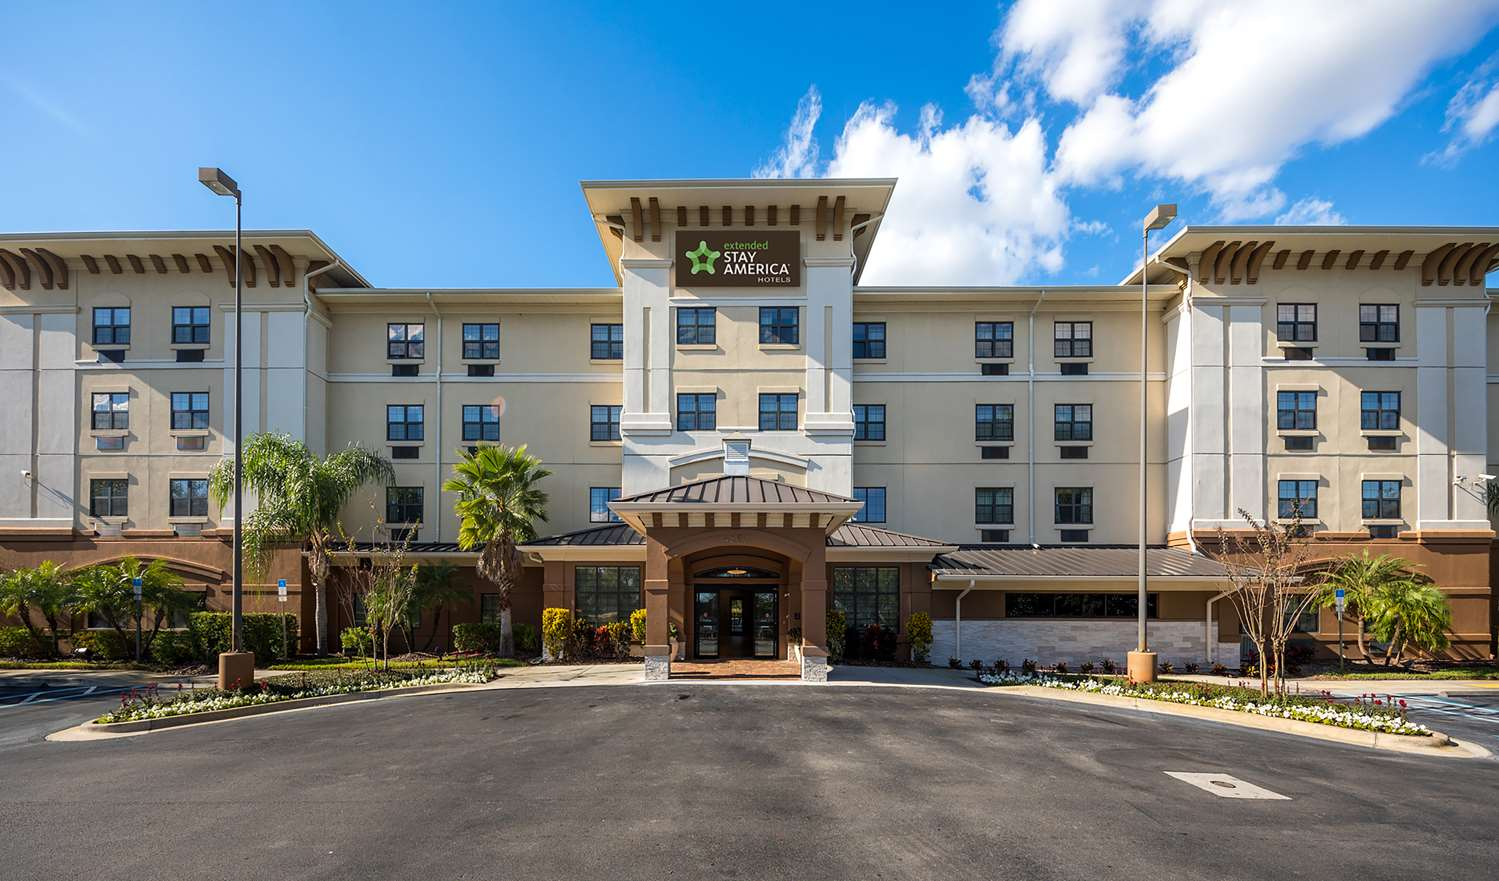 Extended Stay America Hotel I-4 Lakeland, FL - See Discounts